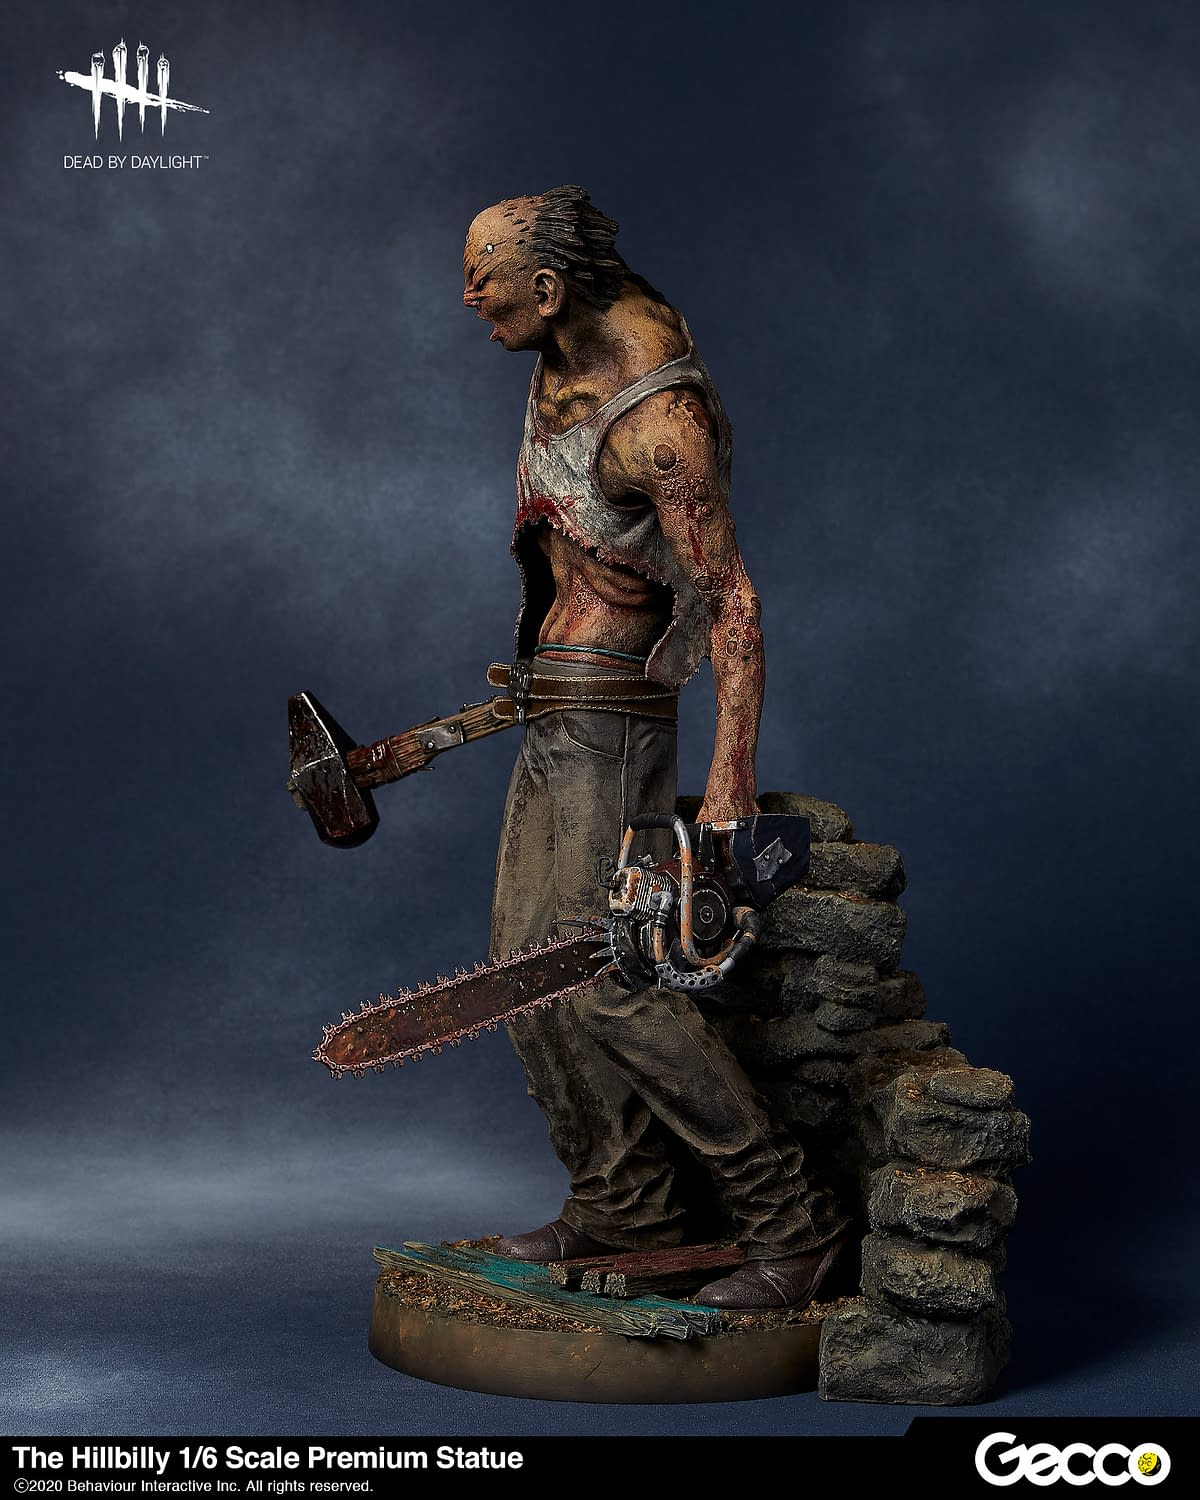 Gecco-Dead-by-Daylight-Hillbilly-Statue-008